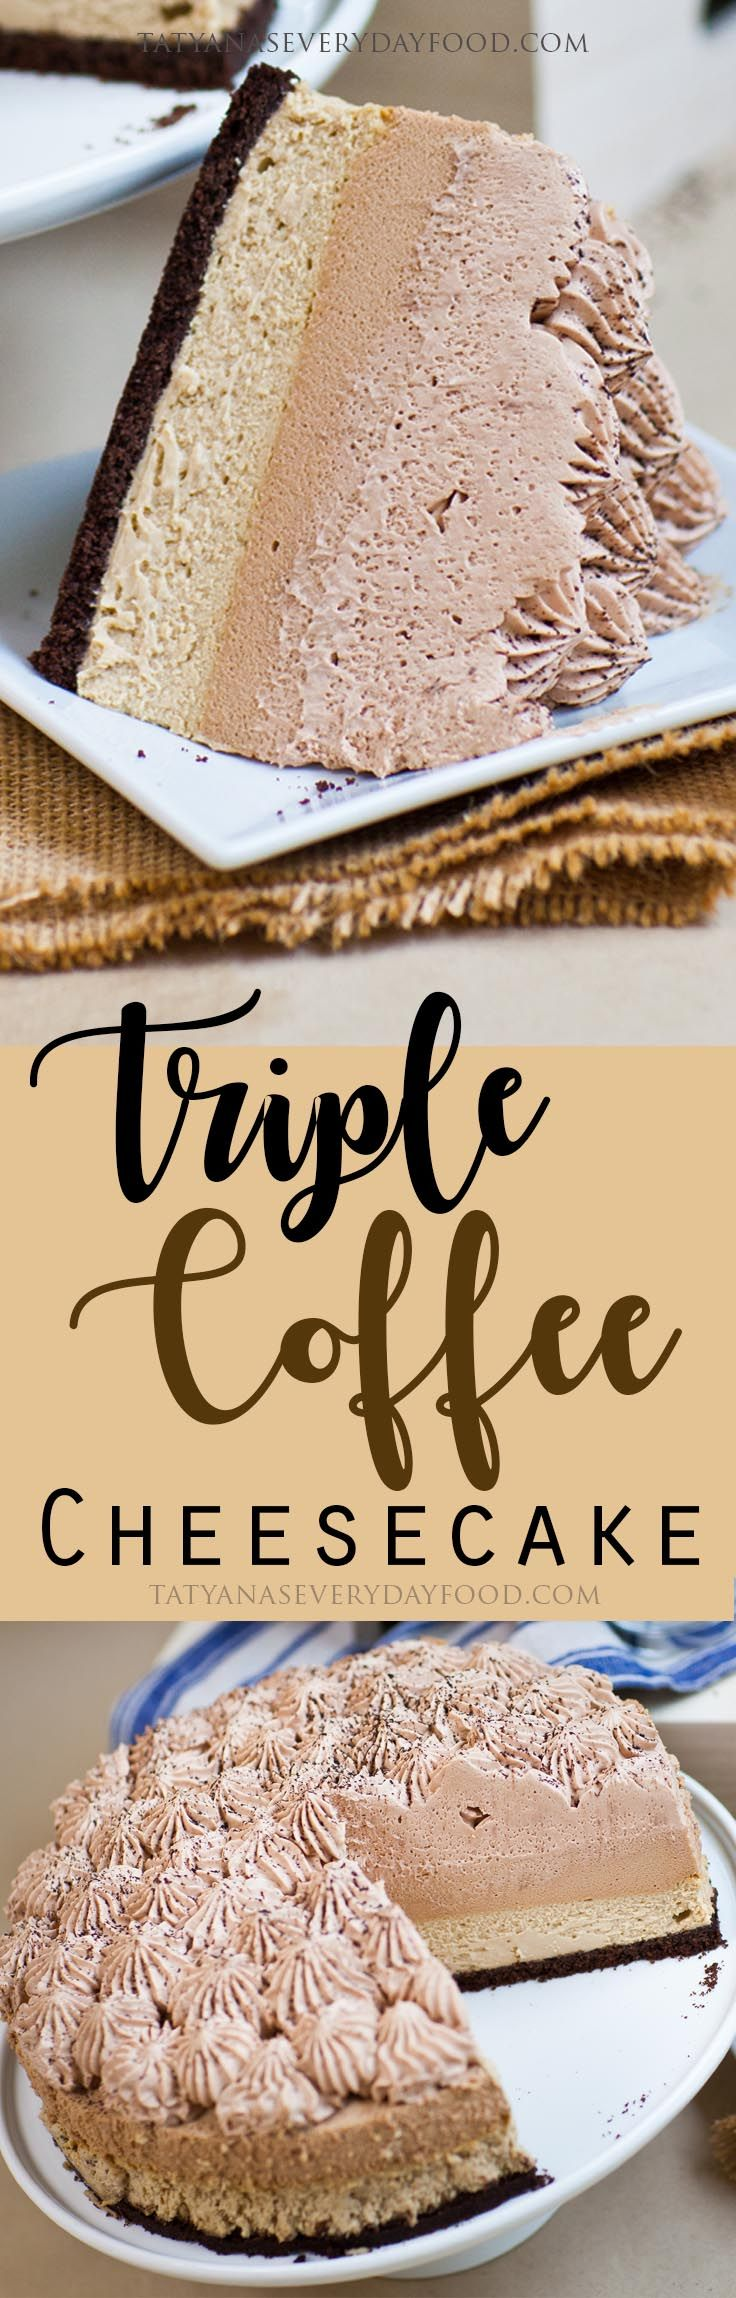 Coffee lovers – this extravagant cake is for you! My Triple Coffee Cheesecake is a combination of Kahlua cheesecake, Kahlua-coffee